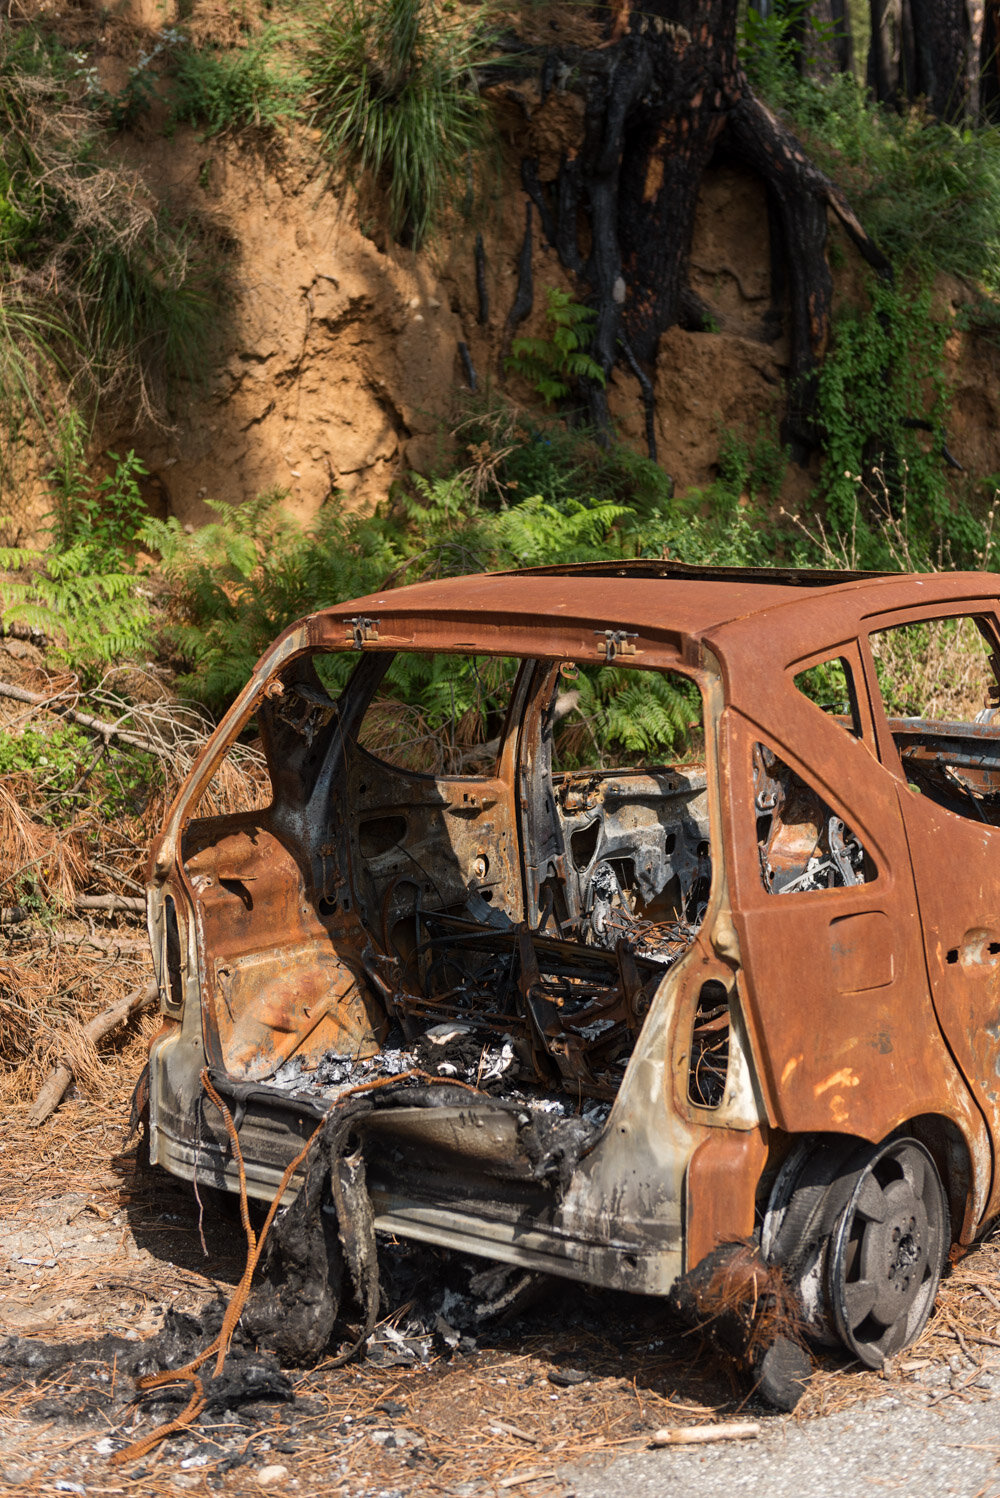 A burned car on the road that connects Regio Calabria to the Sanctuary of Our Lady of Polsi, on the Aspromonte National Park, August 12, 2018.